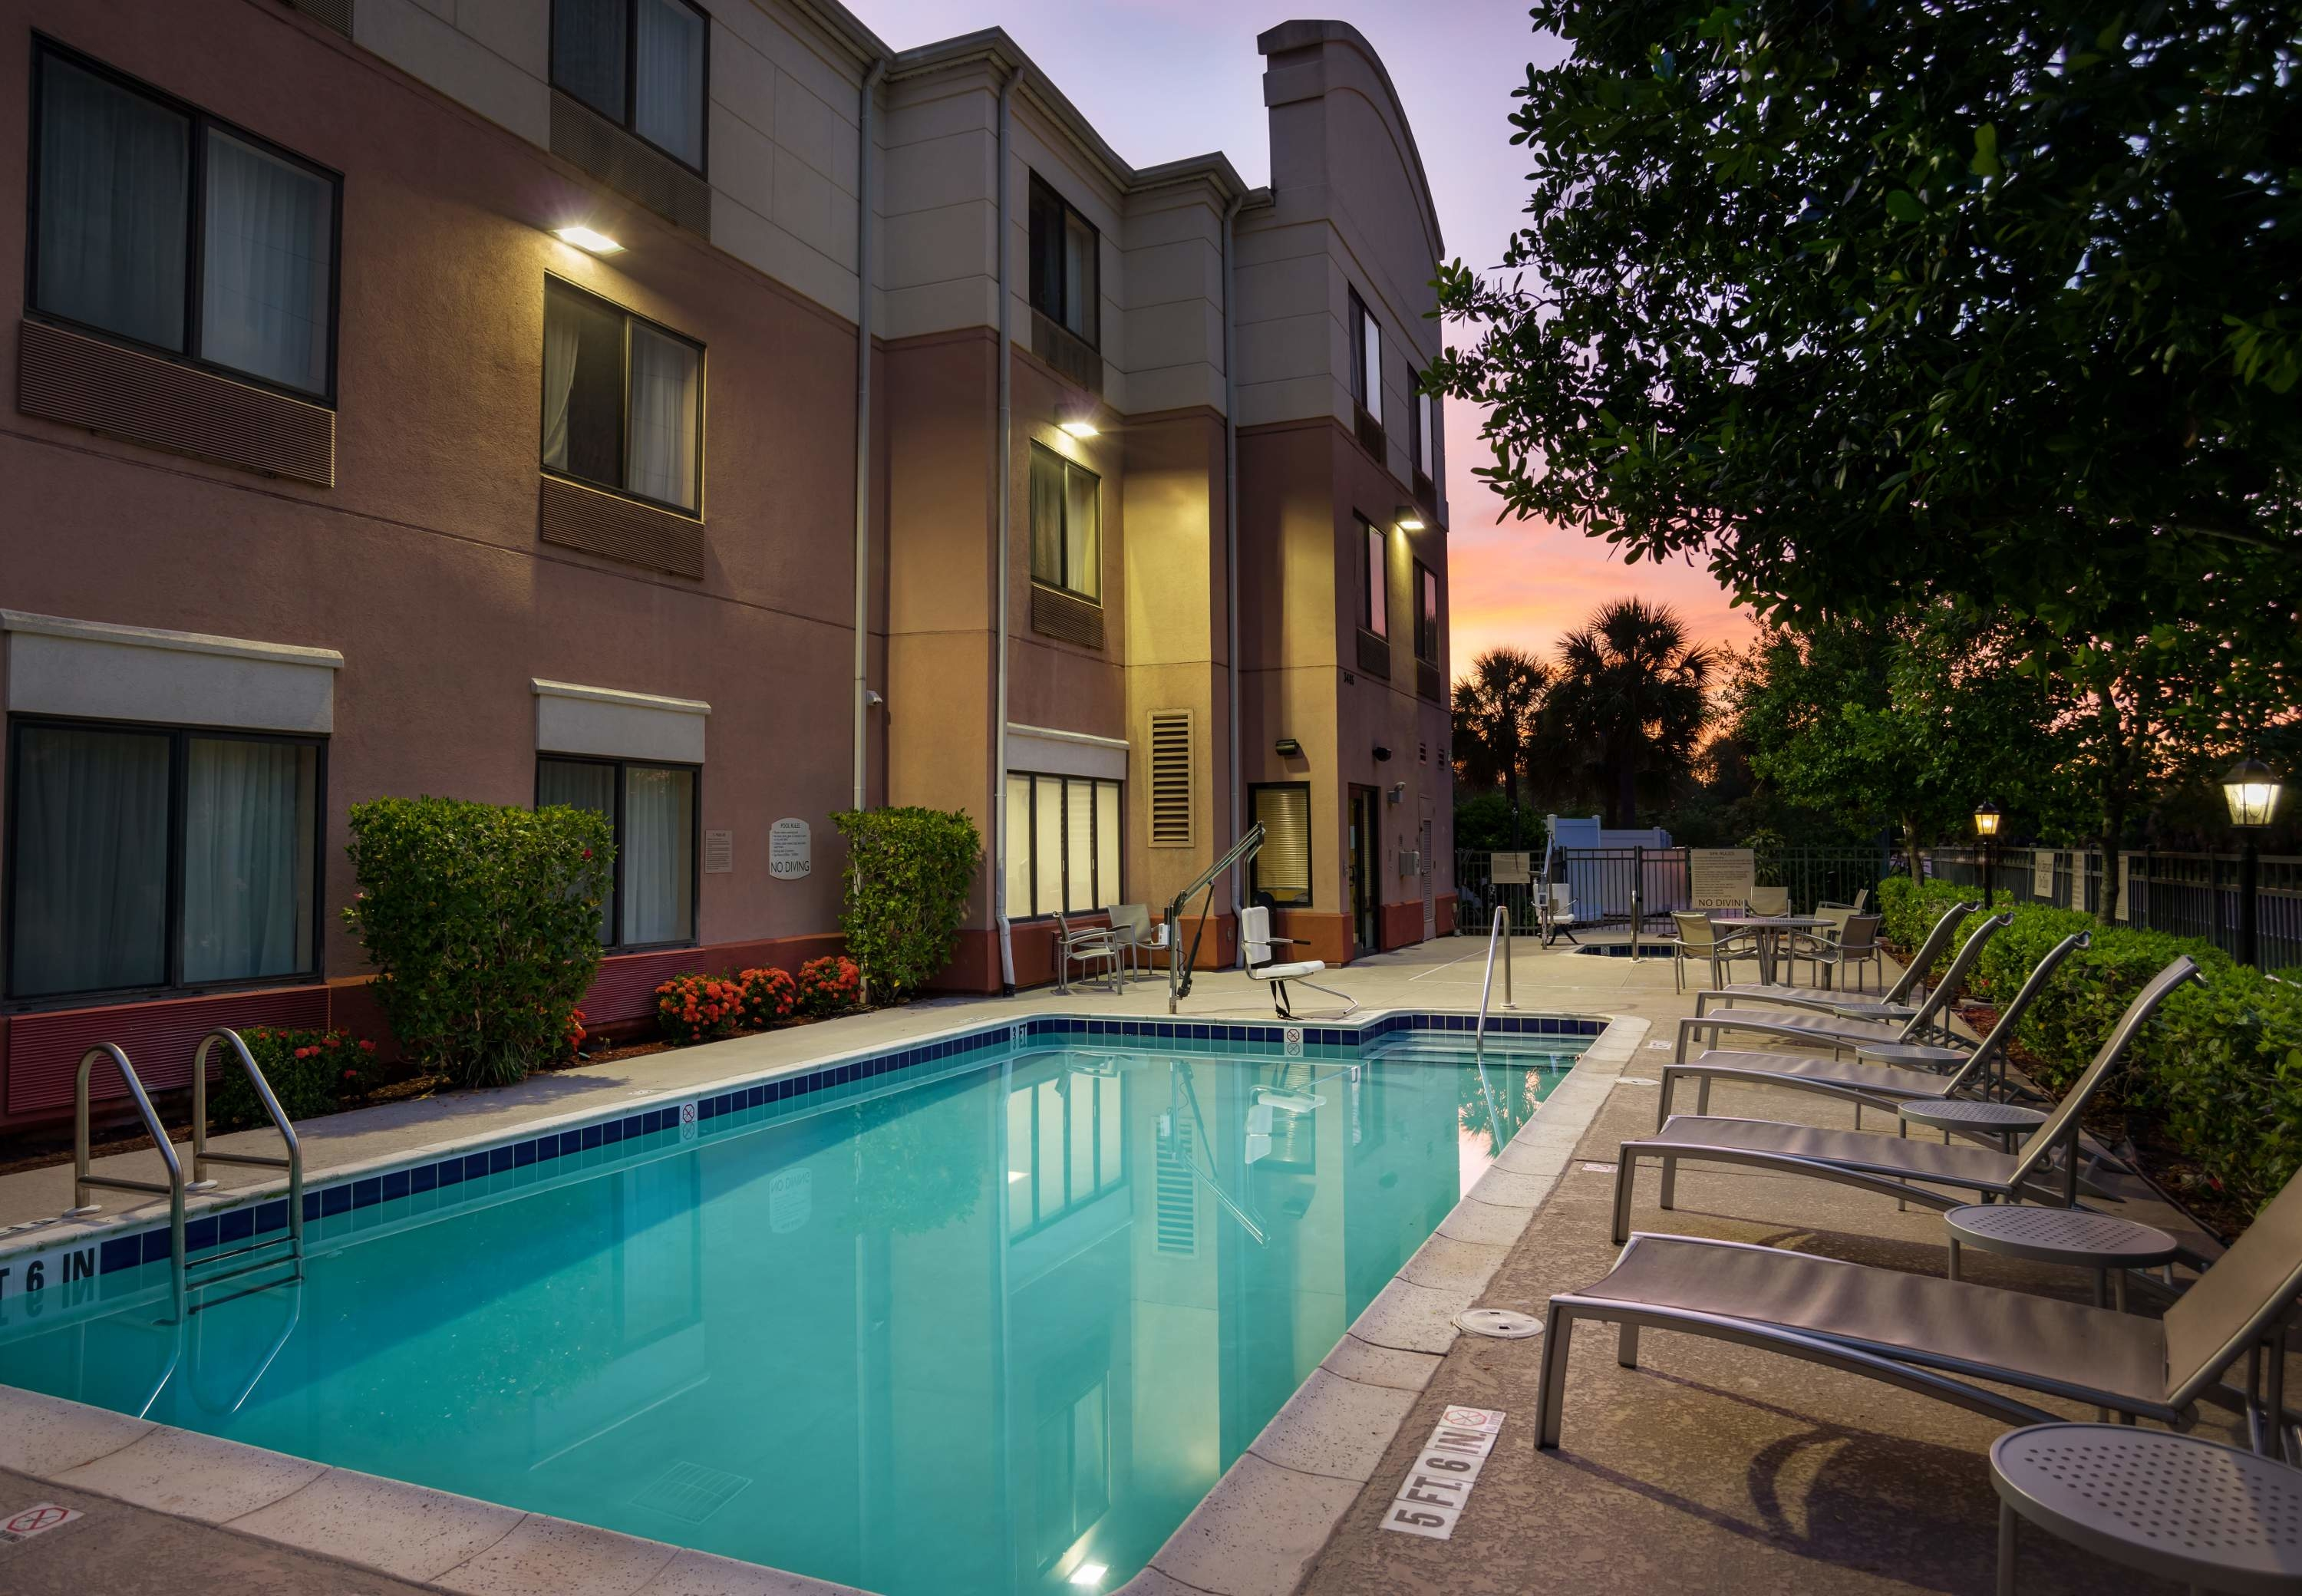 SpringHill Suites by Marriott St. Petersburg Clearwater image 2